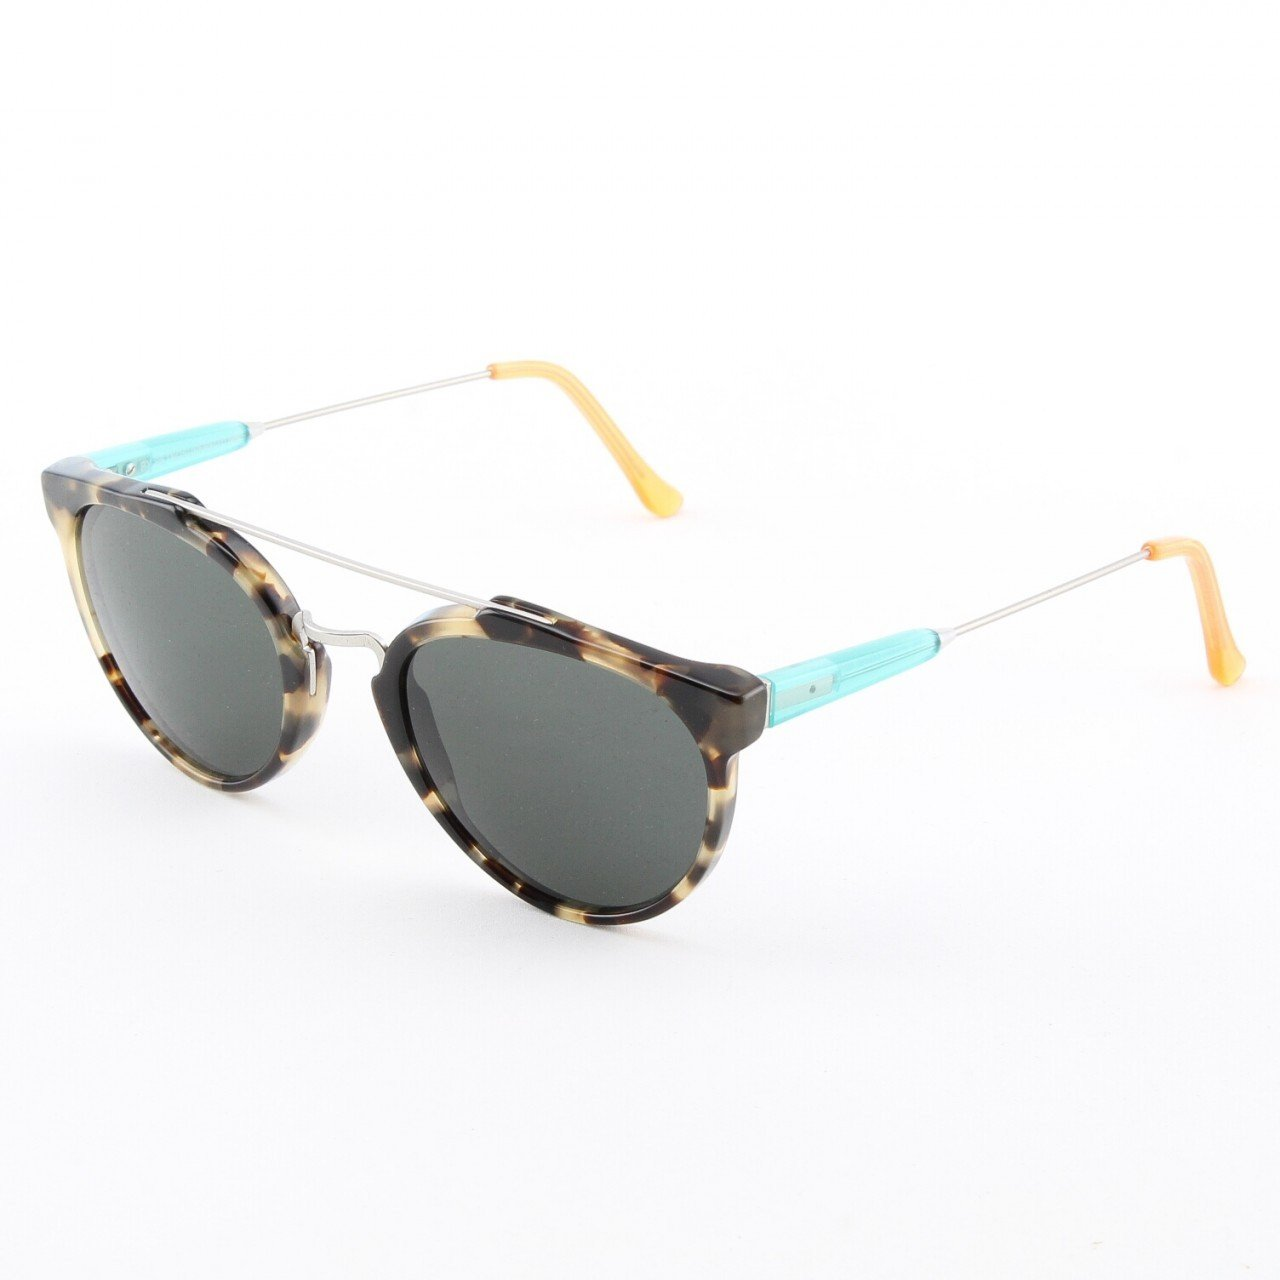 Super Giaguaro 898/3A Sunglasses Brown Puma Turquoise Silver by RETROSUPERFUTURE